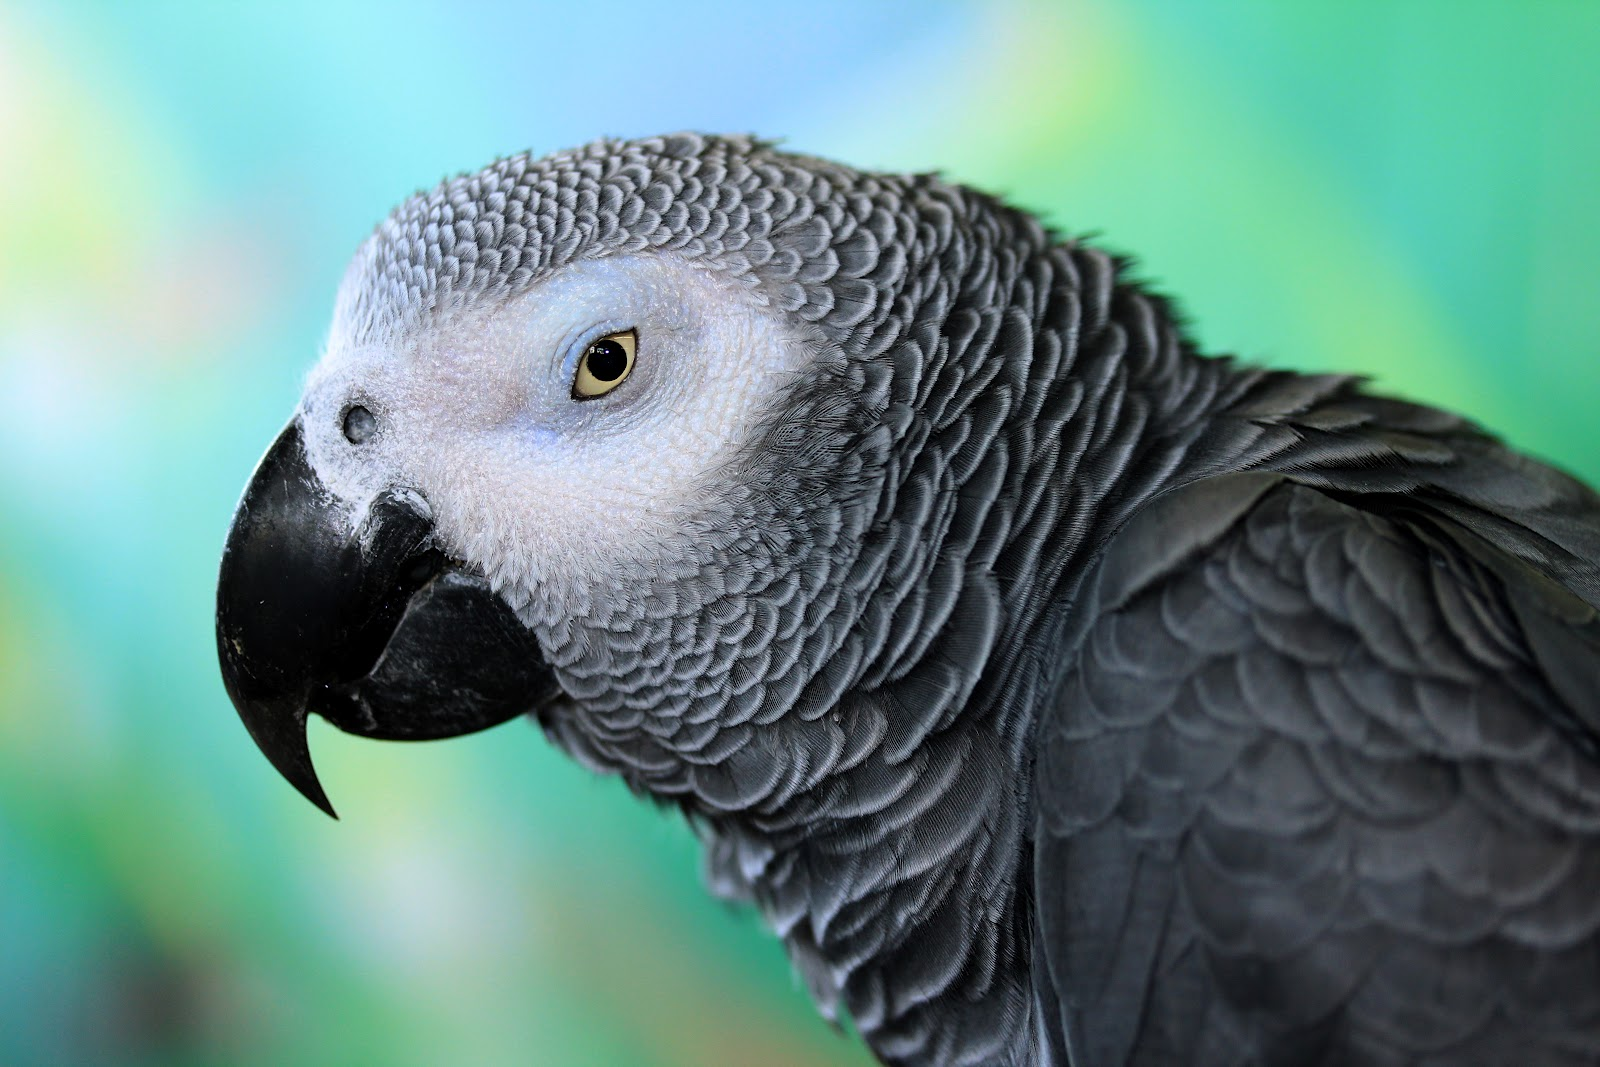 congo african grey The congo african grey is the largest of the african grey parrots, sporting a lighter gray color in its plumage, and a solid black beak.